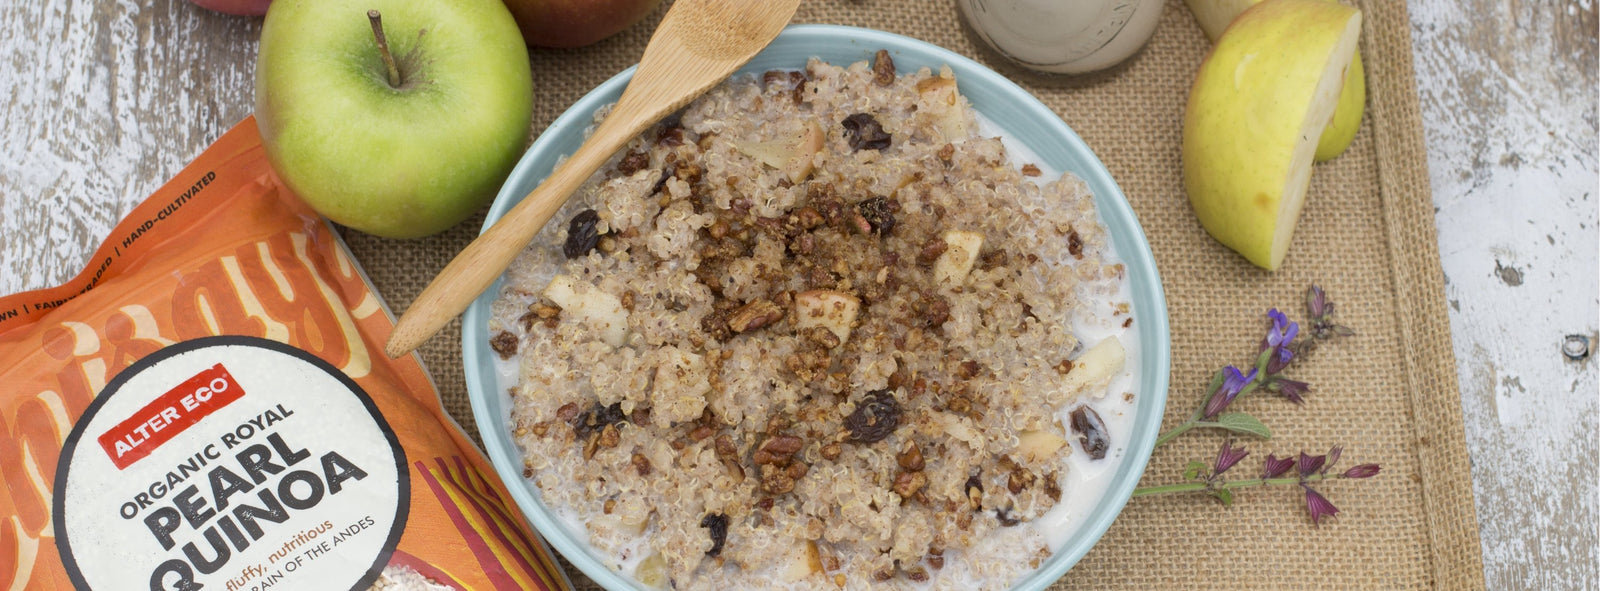 Quinoa Apple Strudel Breakfast Bowl Article